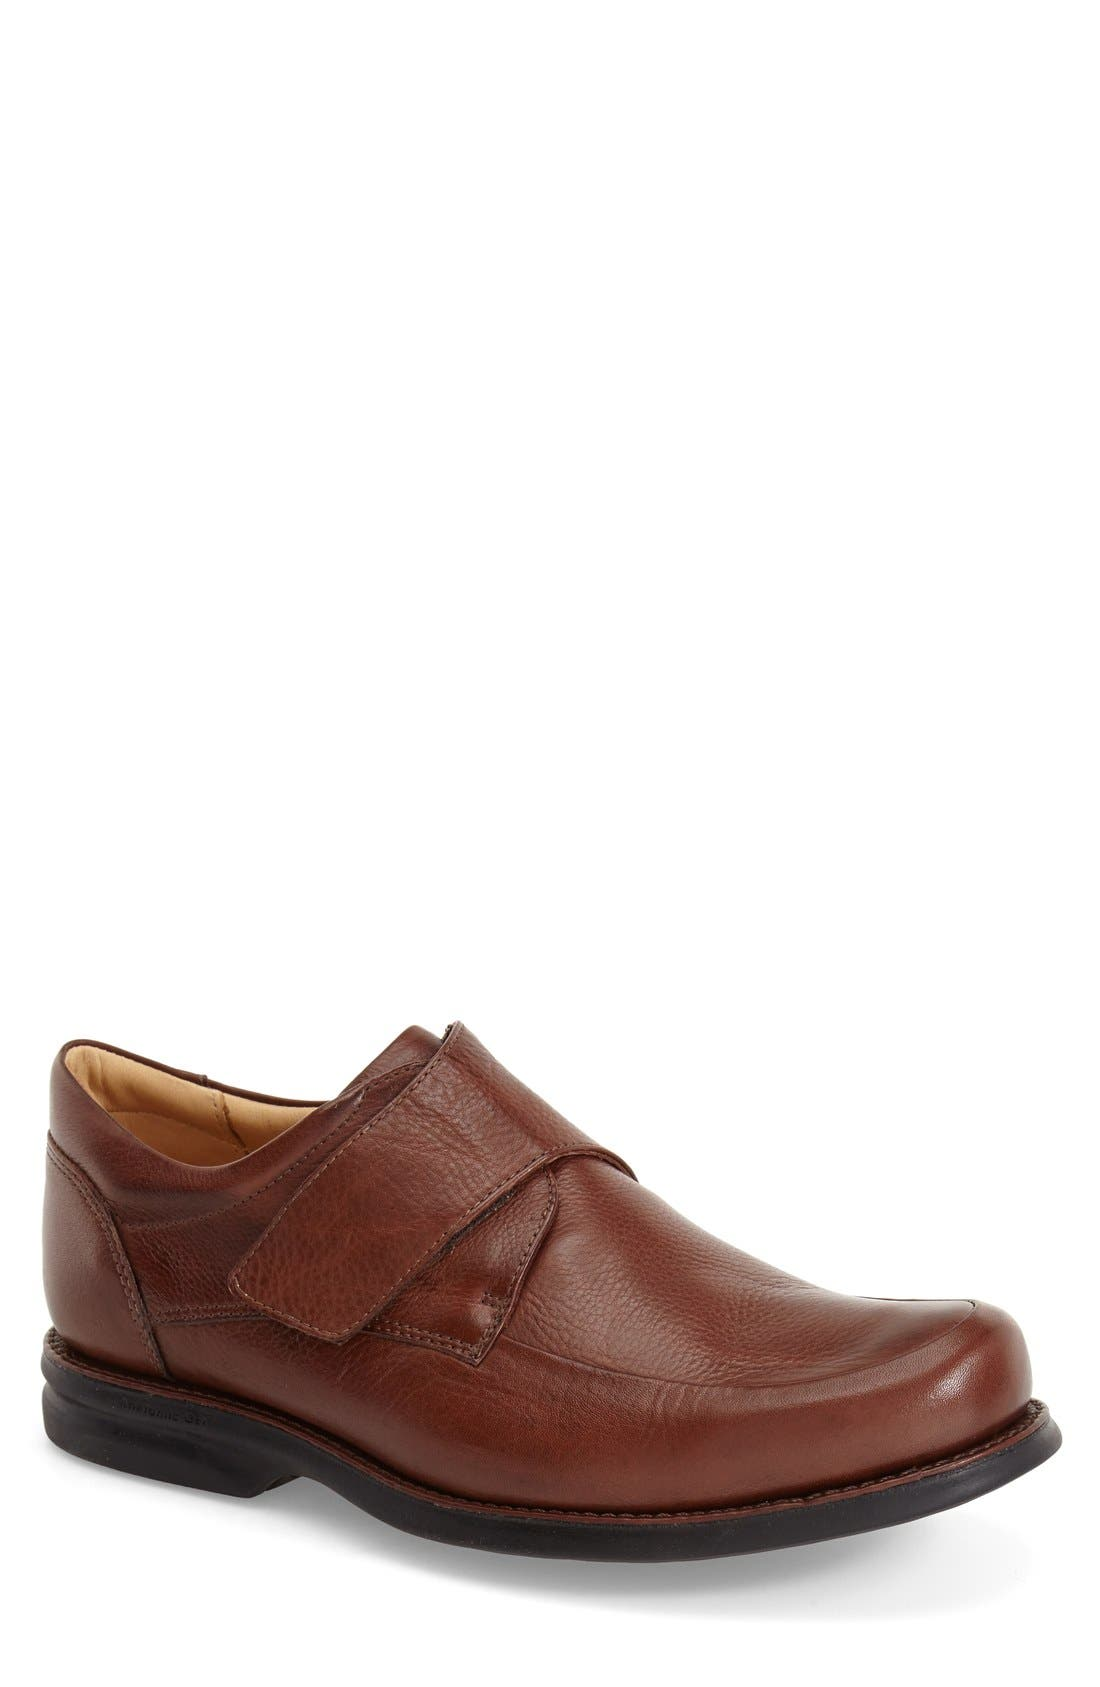 Anatomic & Co Tapajos Slip-On (Men)